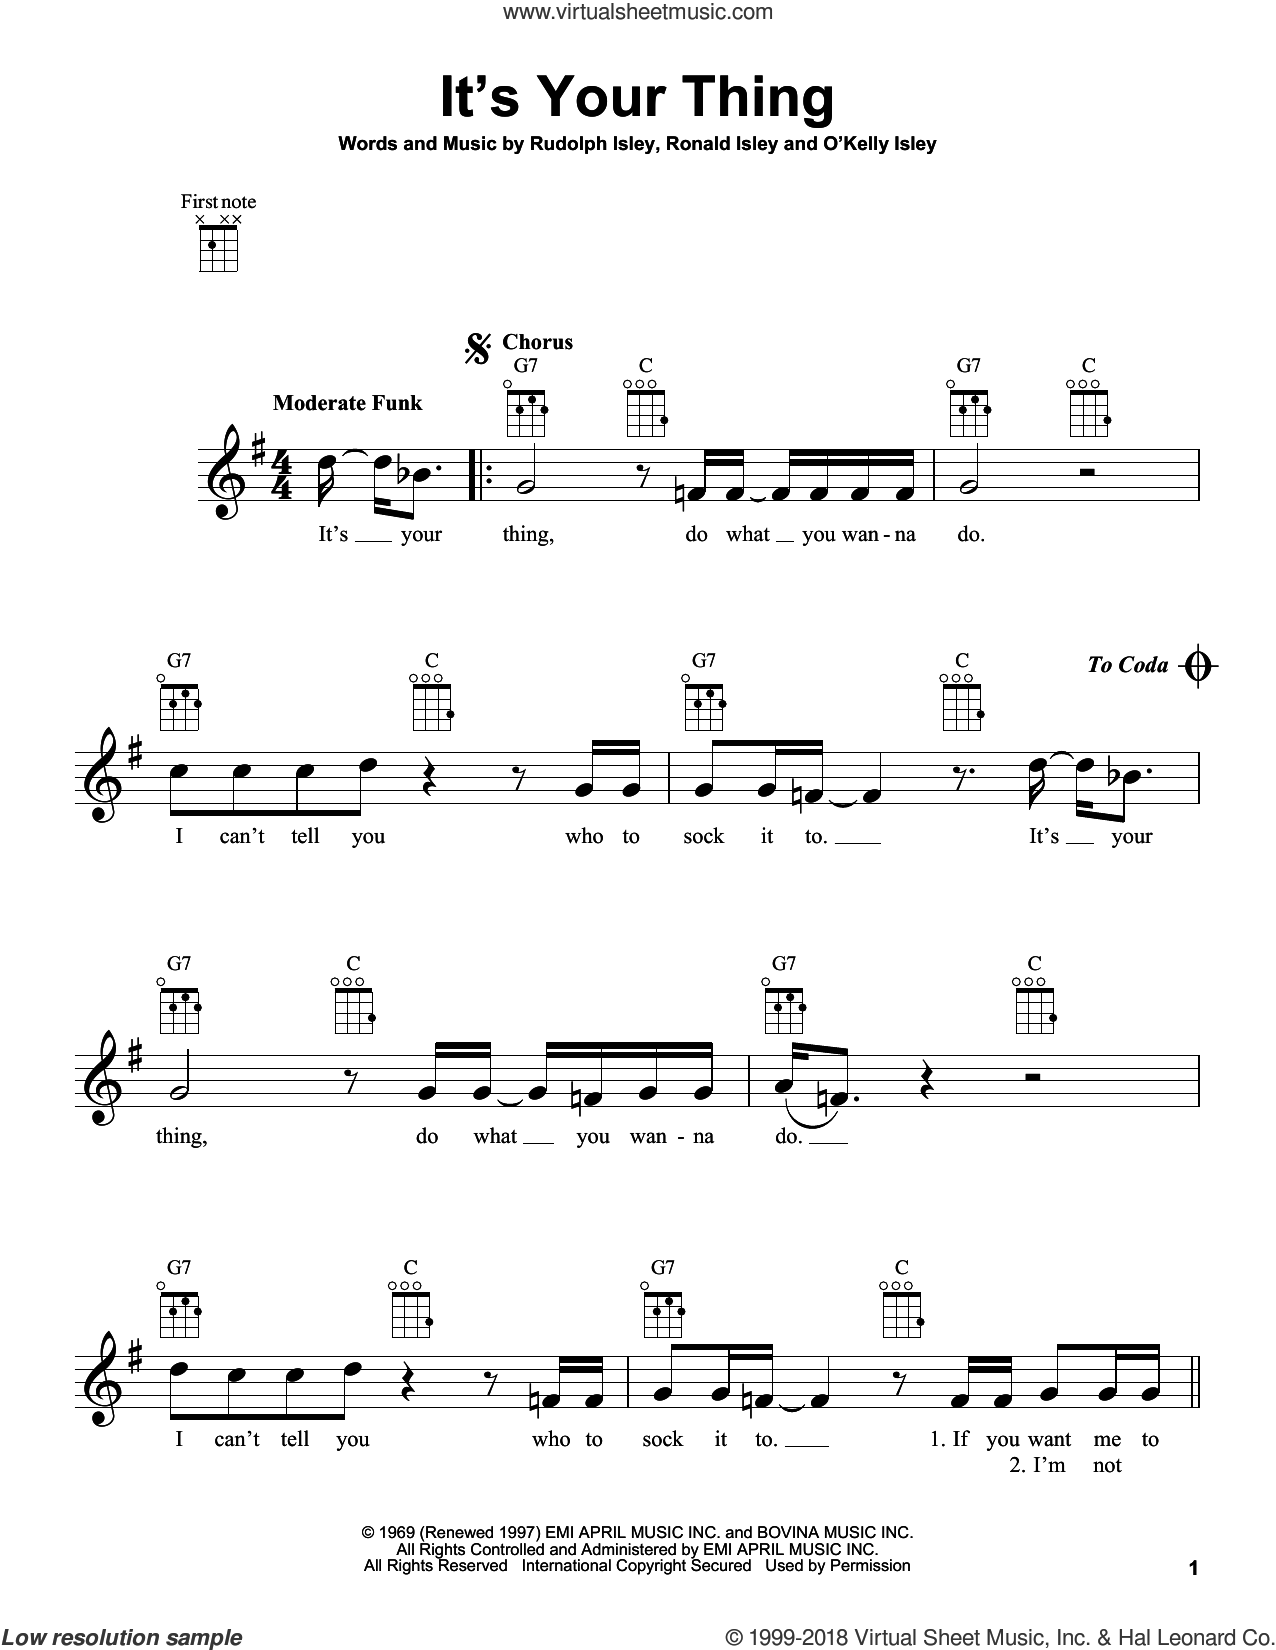 It's Your Thing sheet music for ukulele by The Isley Brothers, Salt-N-Pepa, O Kelly Isley, Ronald Isley and Rudolph Isley, intermediate skill level